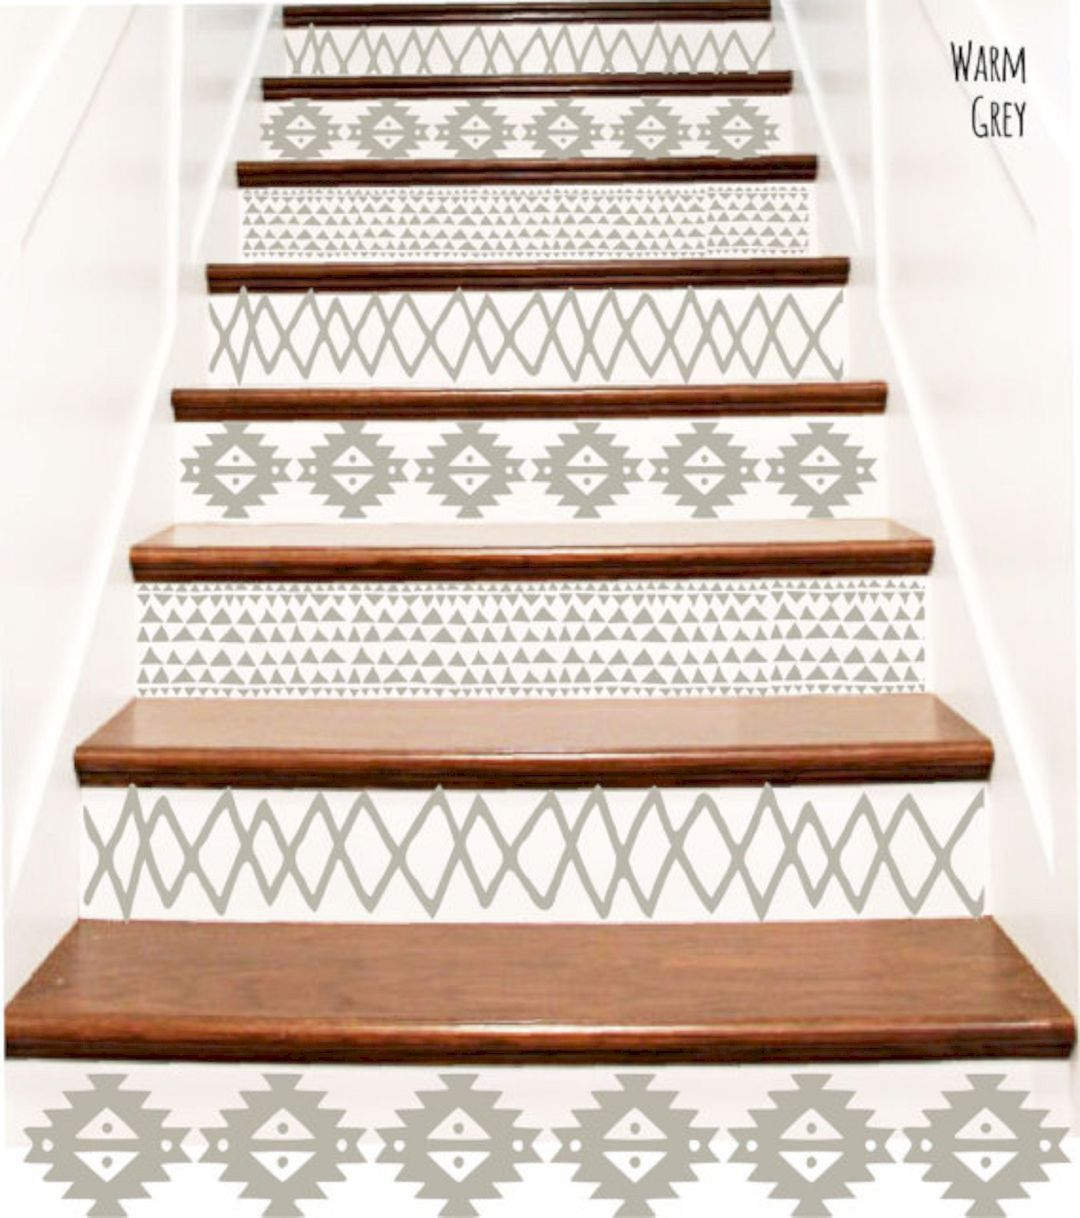 58 Cool Ideas For Decorating Stair Risers: 10 Timeless Home Decorating Trends That Never Go Out Of